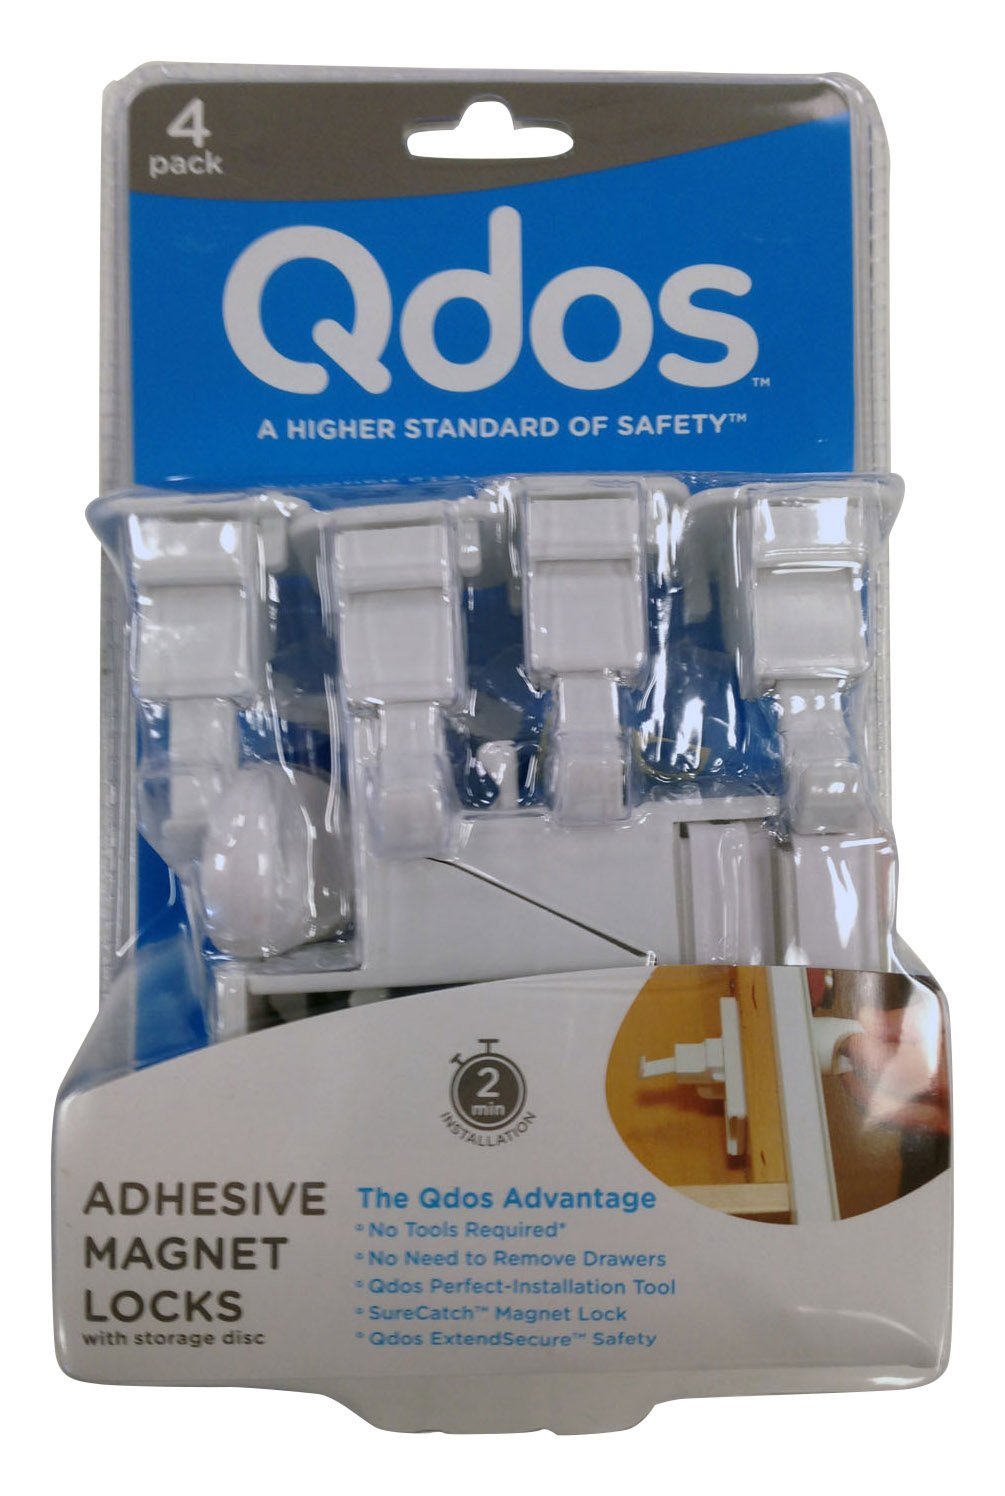 QDOS SureCatch Adhesive Magnetic Cabinet Lock | 4 Locks + 1 Key | White - Perfect Installation The First time - No Removing Drawers! No Drilling! No Tools Required! Only for Standard Framed Cabinets